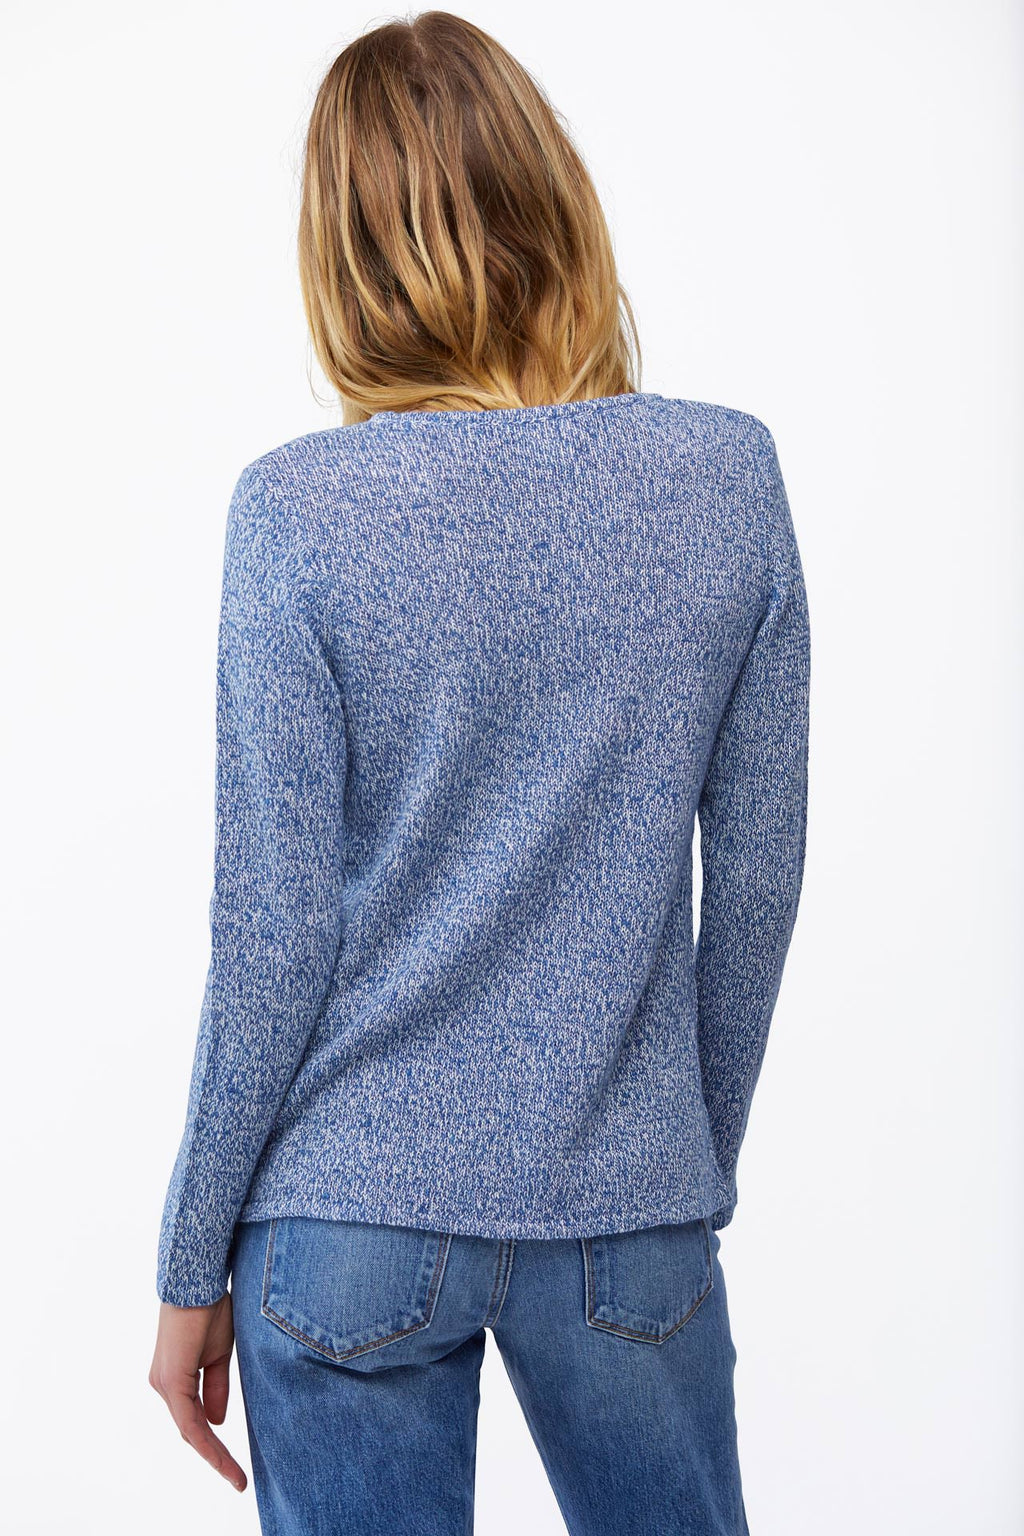 The Laurel Sweater in Marine